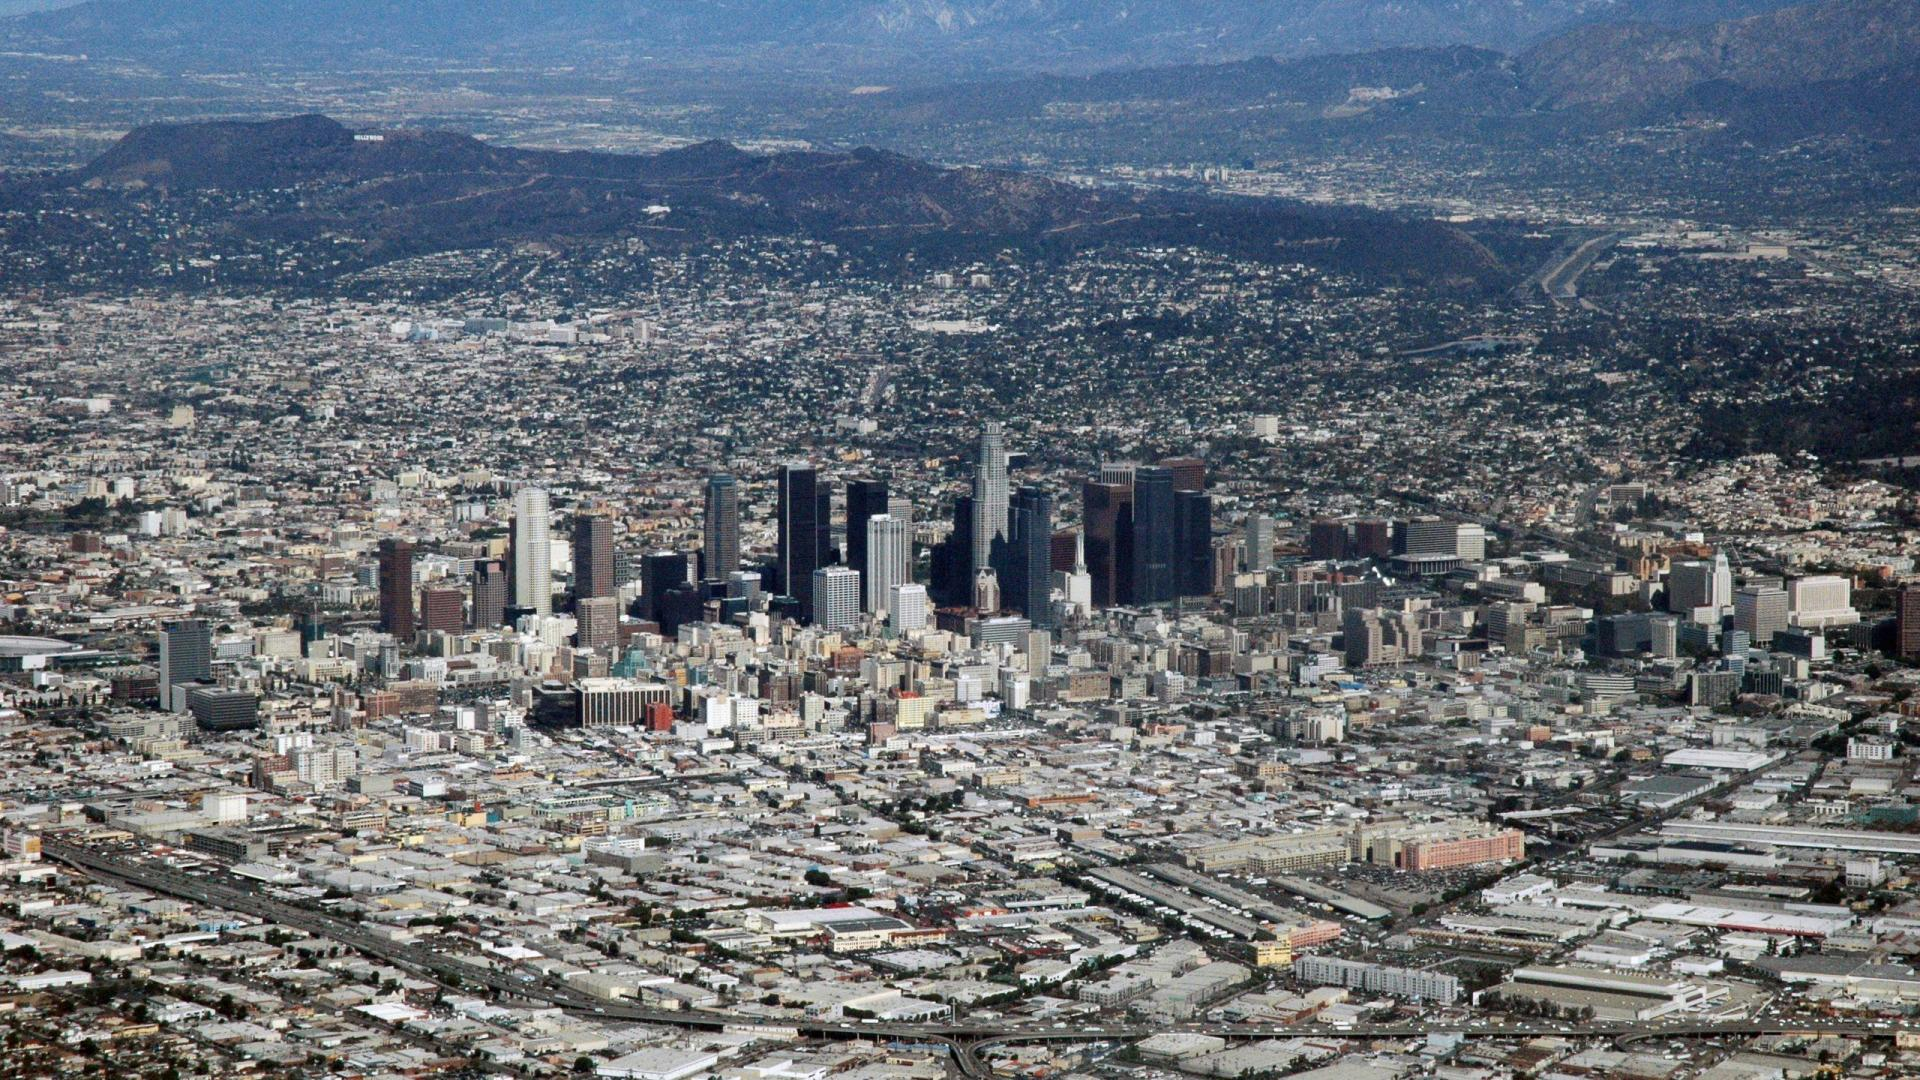 Los Angeles  CA   United States  USA Pictures HD Wallpaper